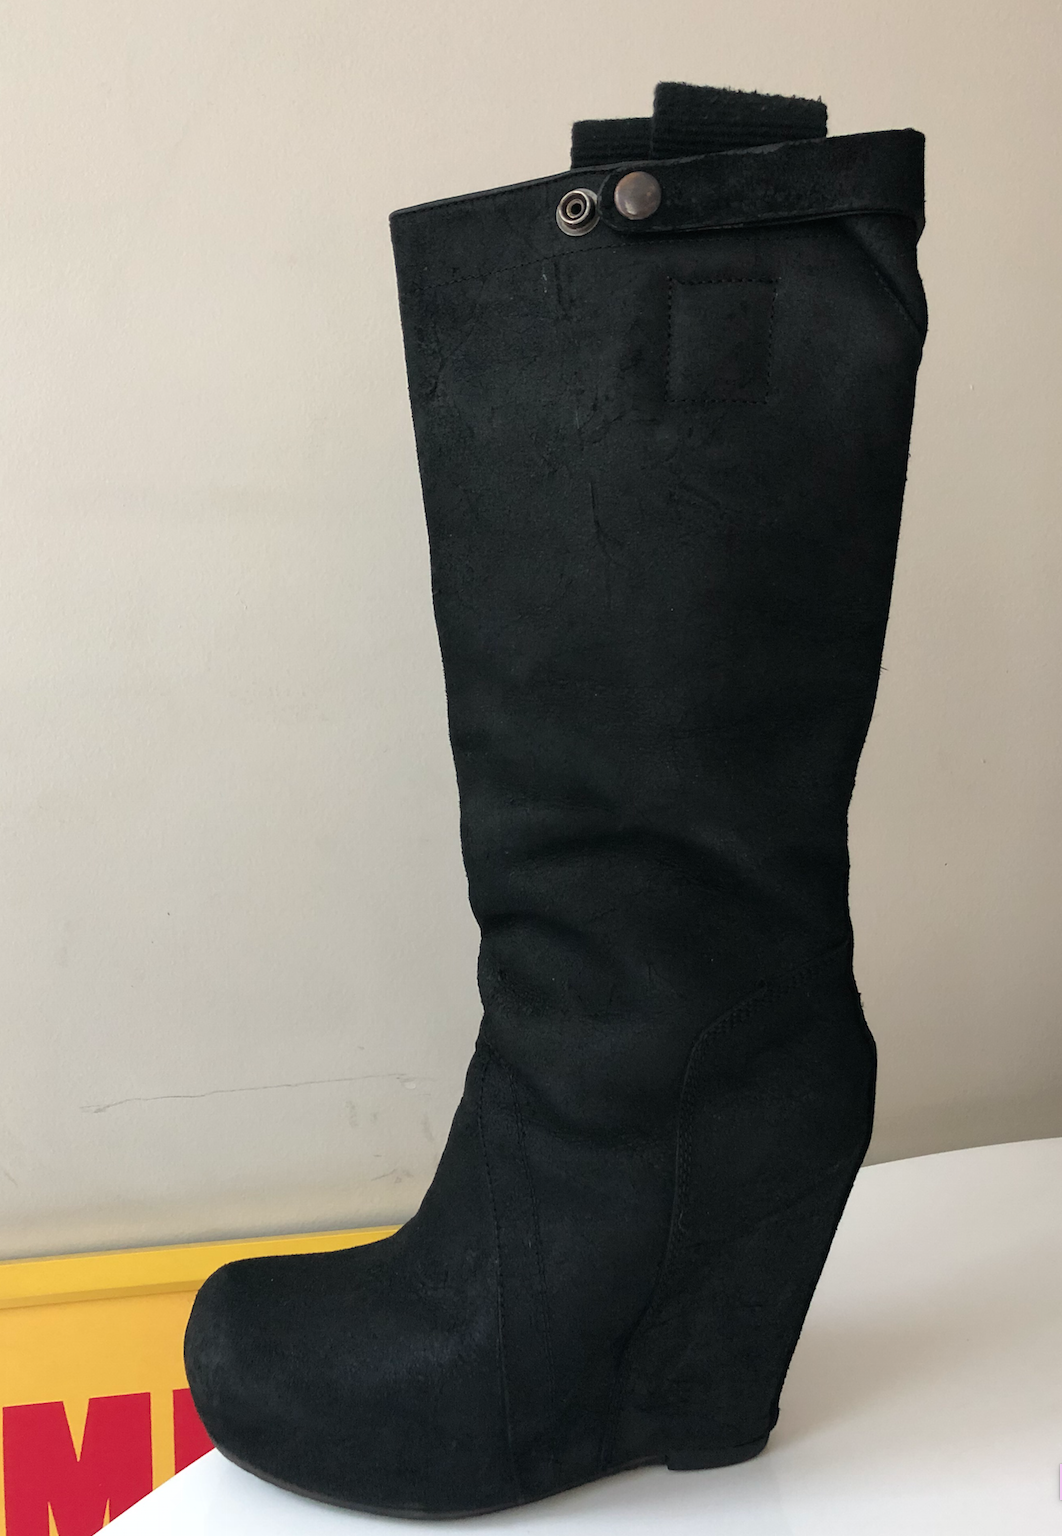 Rick Owens  MADE IN ITALY WOMEN DISTRESSED DISTRESSED DISTRESSED LEATHER HIGH WEDGE BOOTS EU 37 US 7 17acca